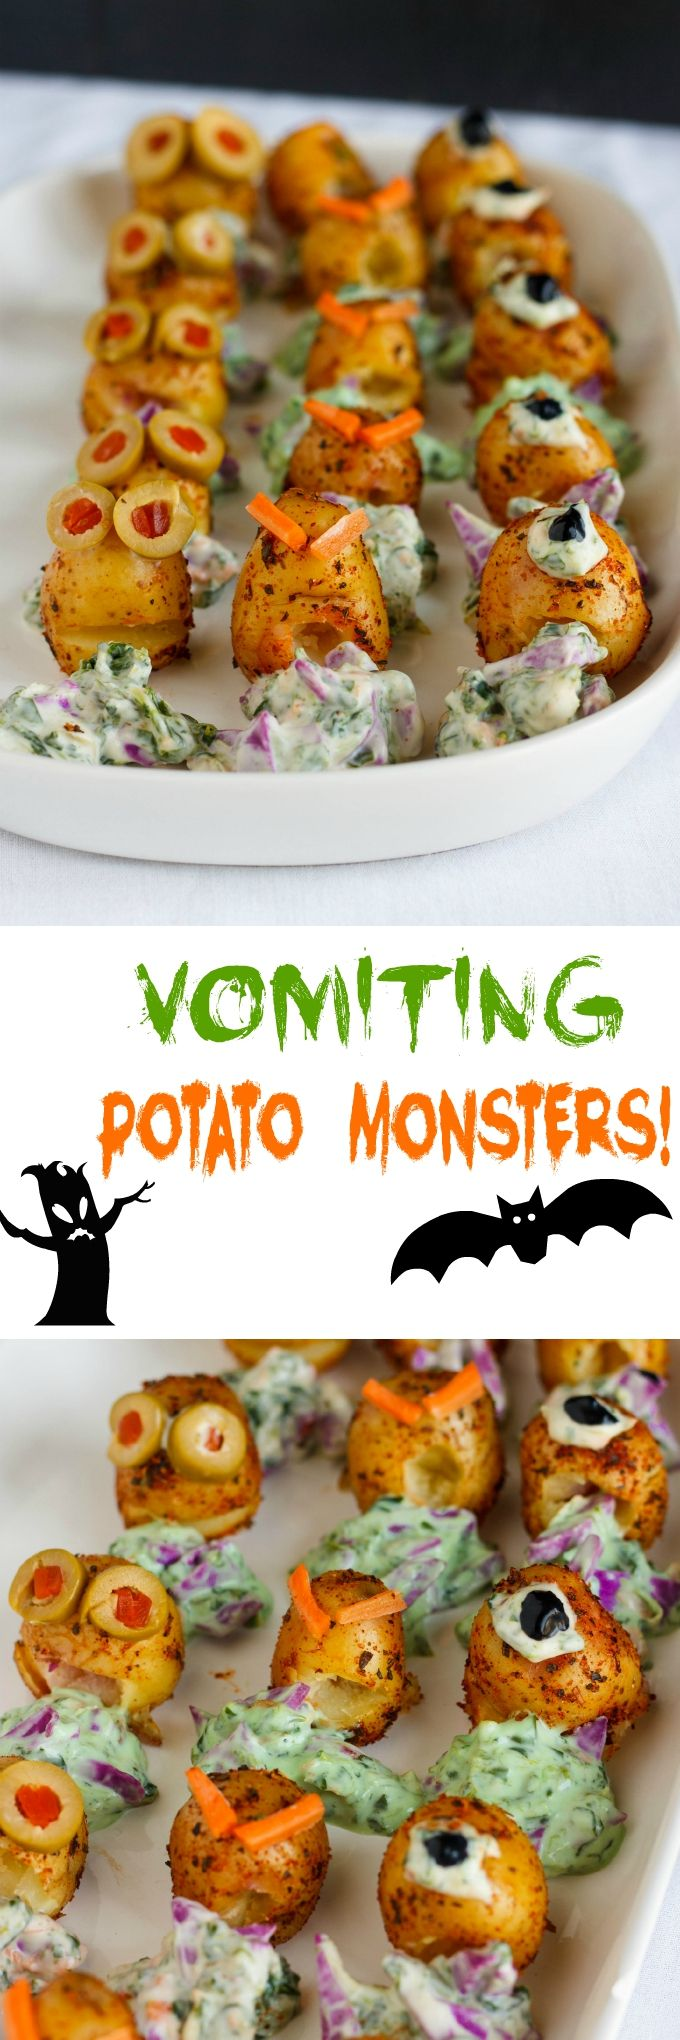 vomiting potato monsters are a great appetizer for halloween - Great Halloween Appetizers